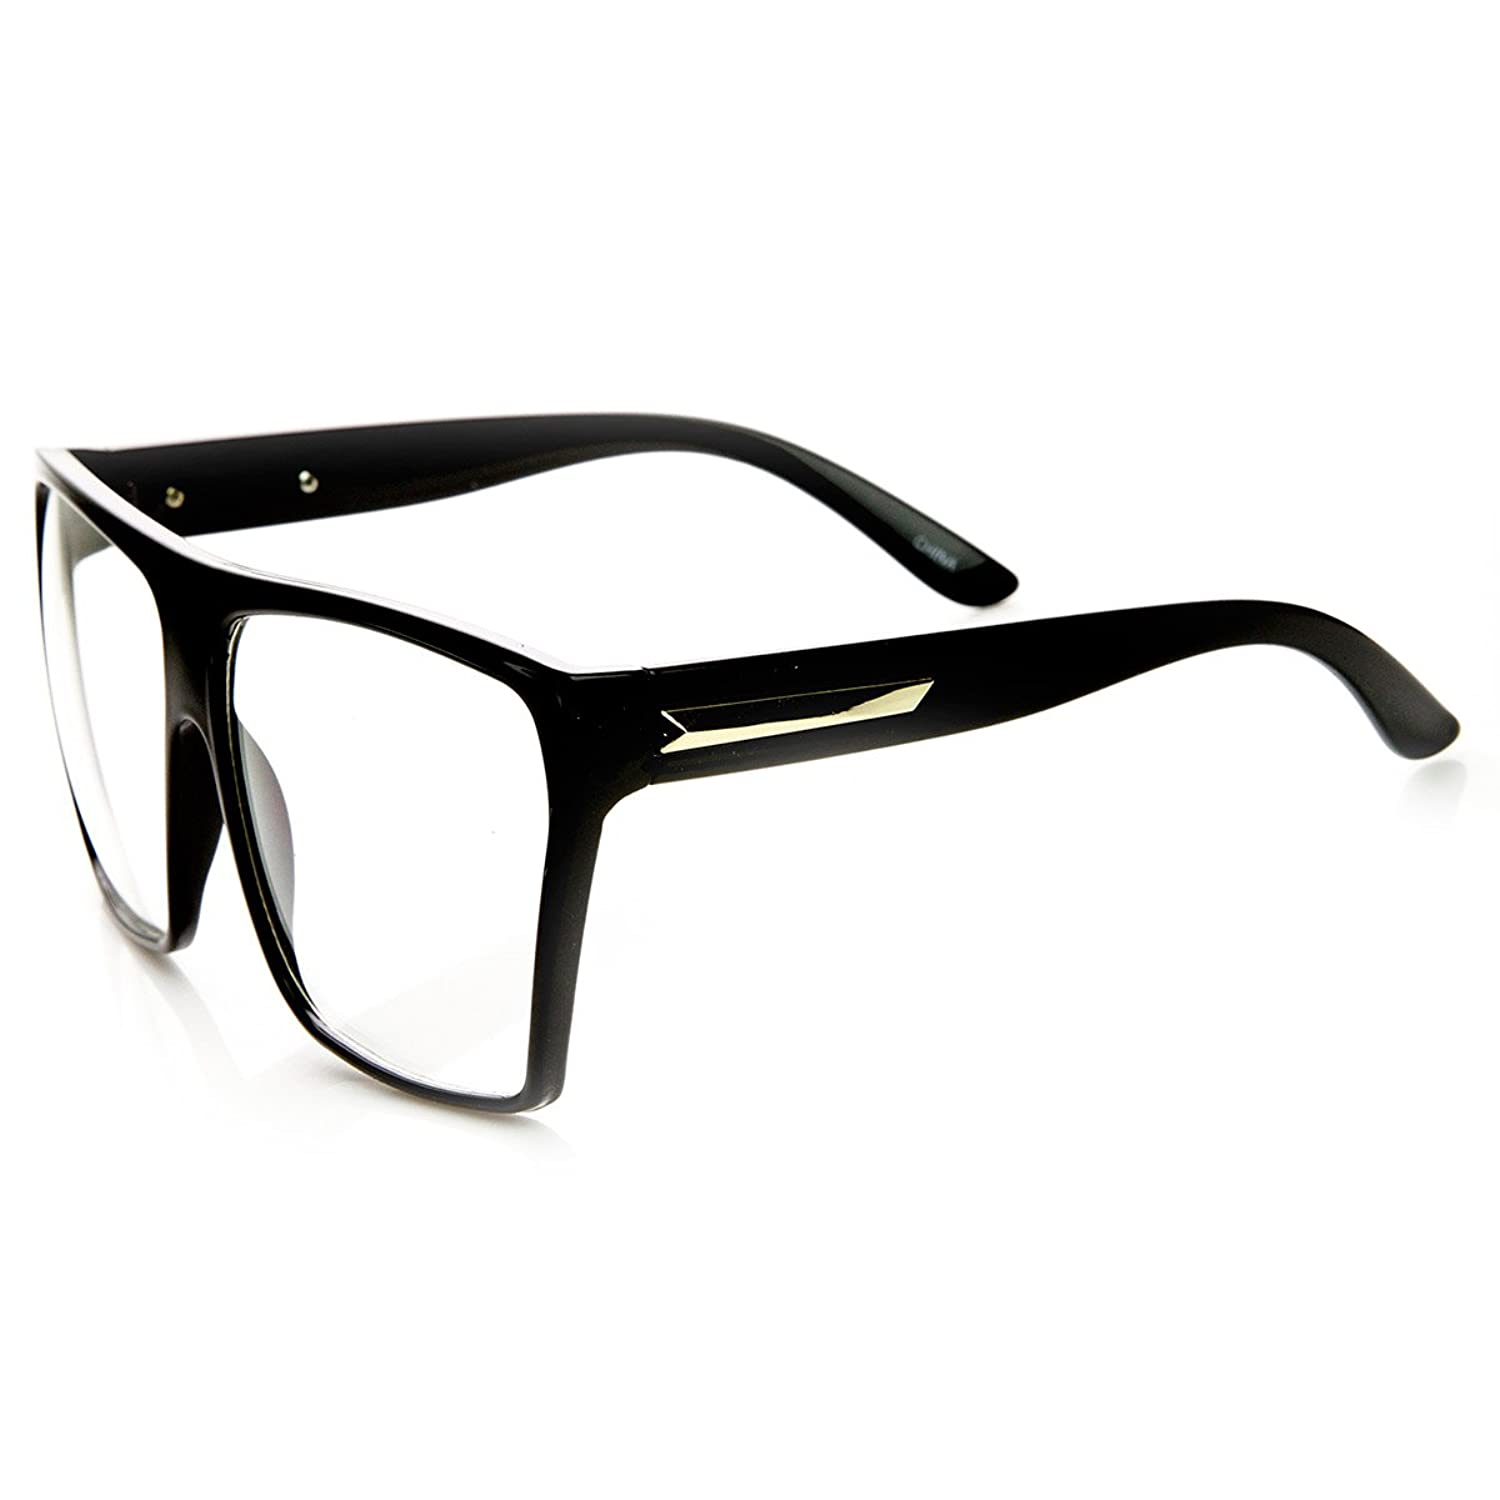 Amazon.com: Large Oversized Retro Fashion Clear Lens Square Glasses ...